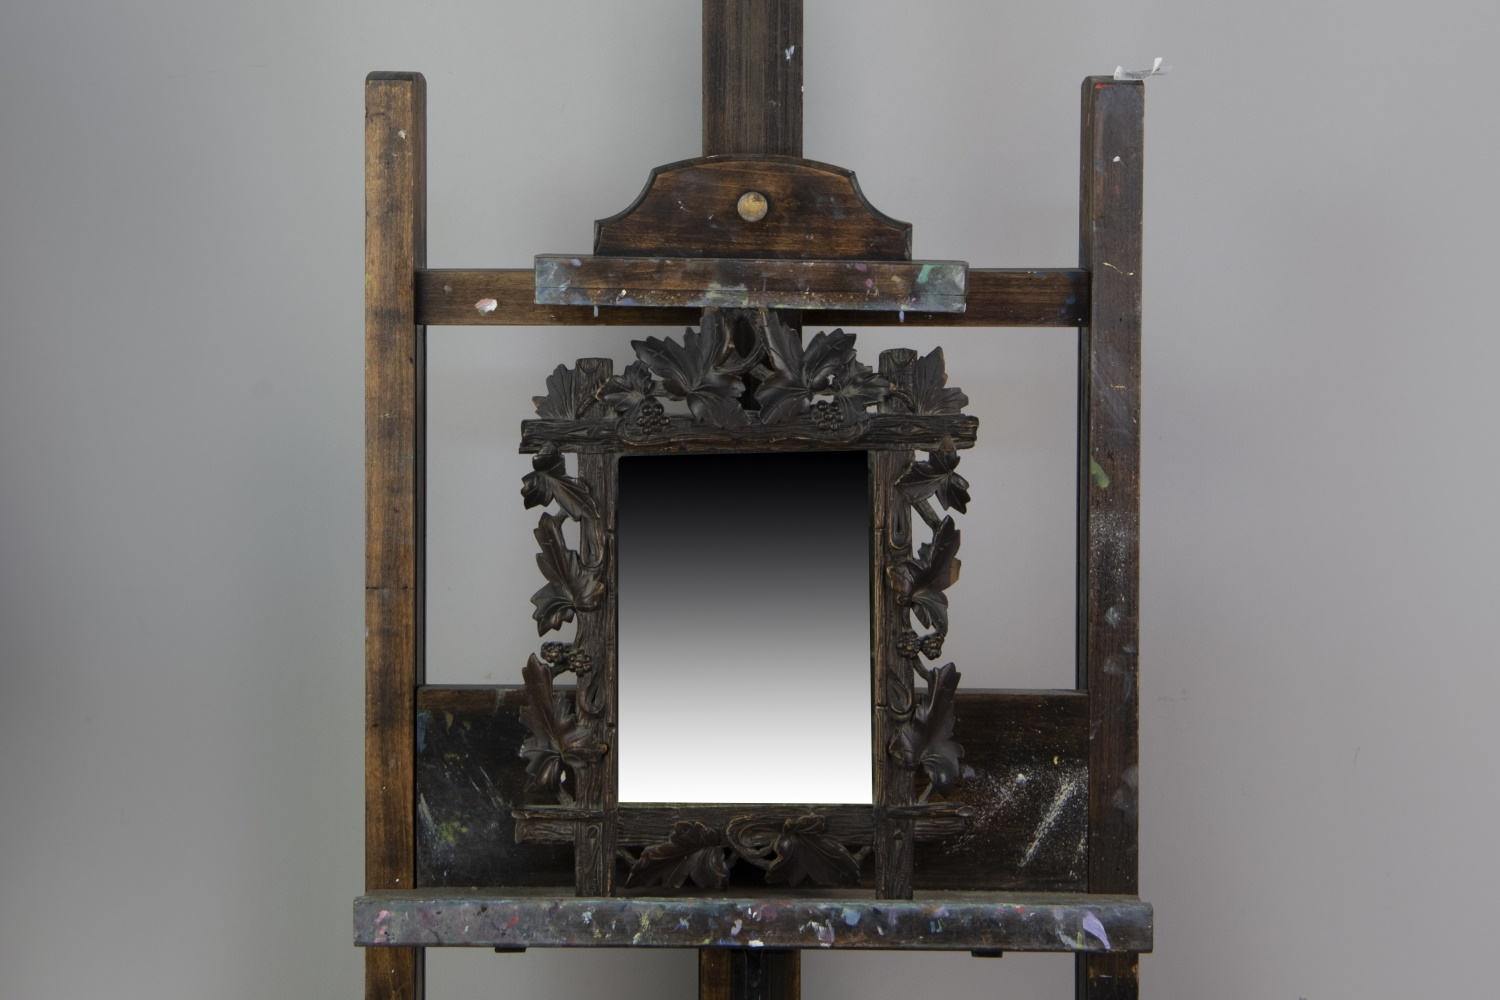 AN EARLY 20TH CENTURY BLACK FOREST WALL MIRROR